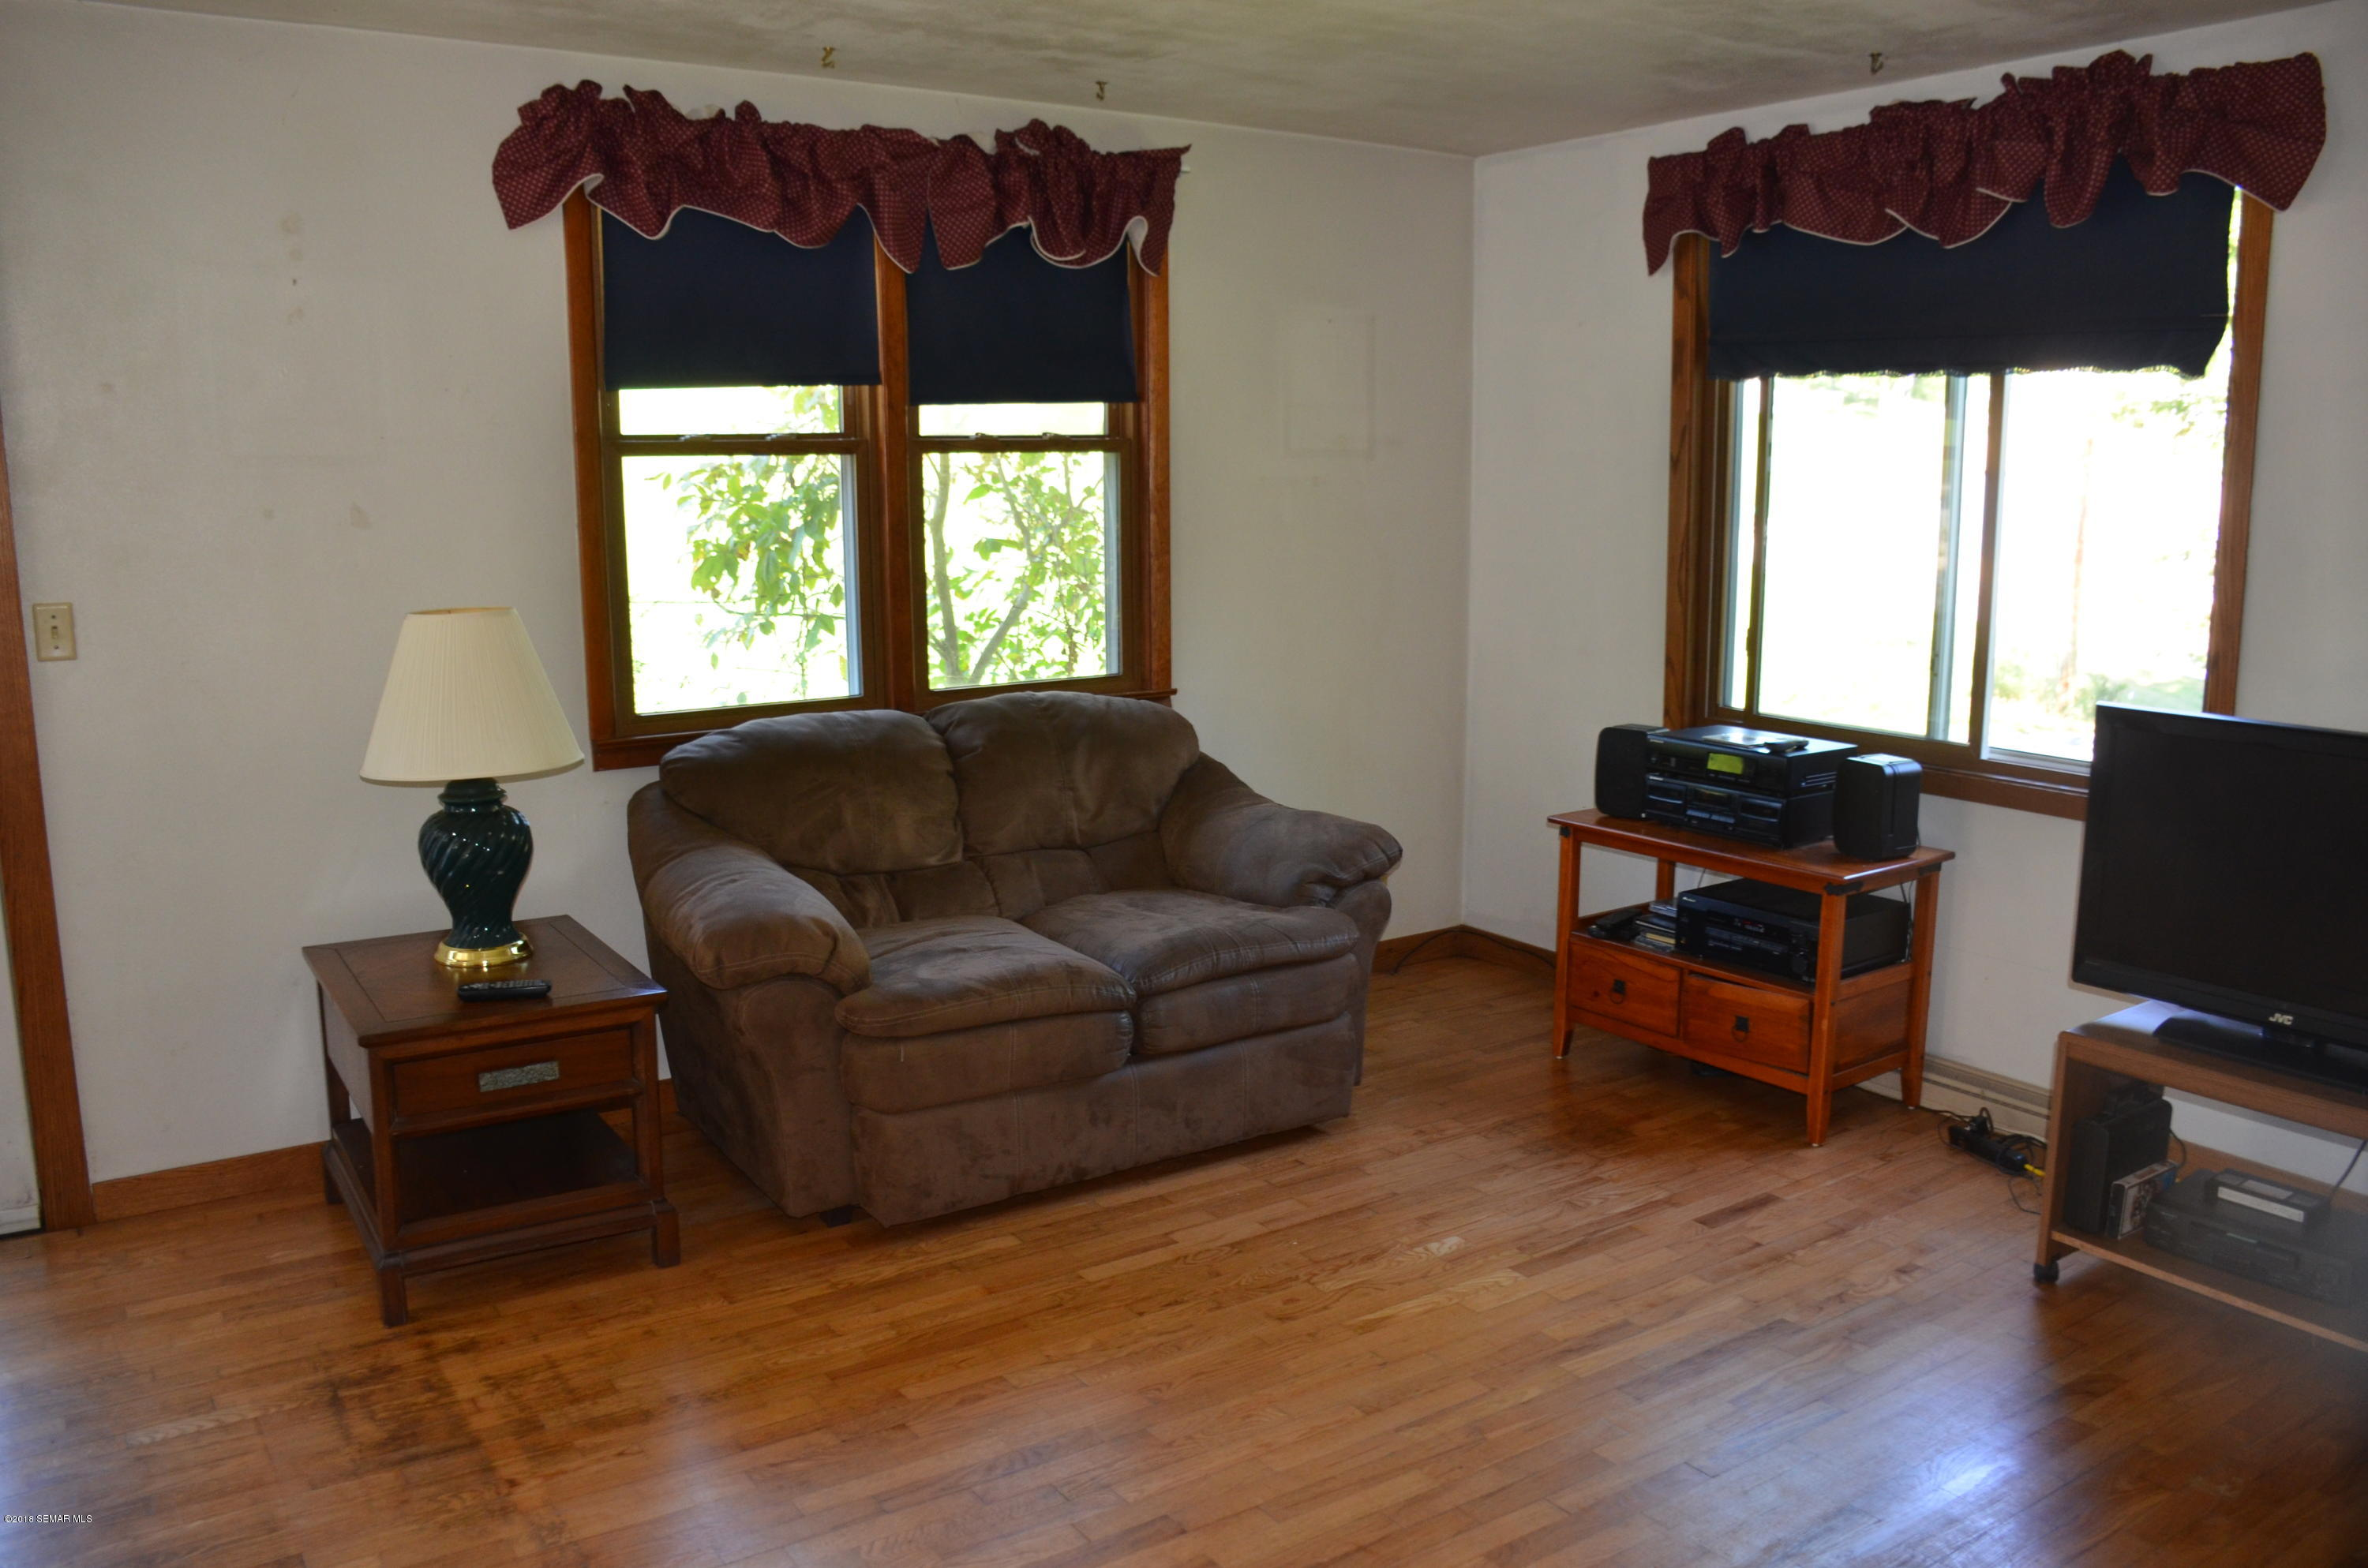 46553 Waas Valley,La Crescent,Minnesota 55947,2 Bedrooms Bedrooms,1 BathroomBathrooms,Single family residence,Waas Valley,4091411